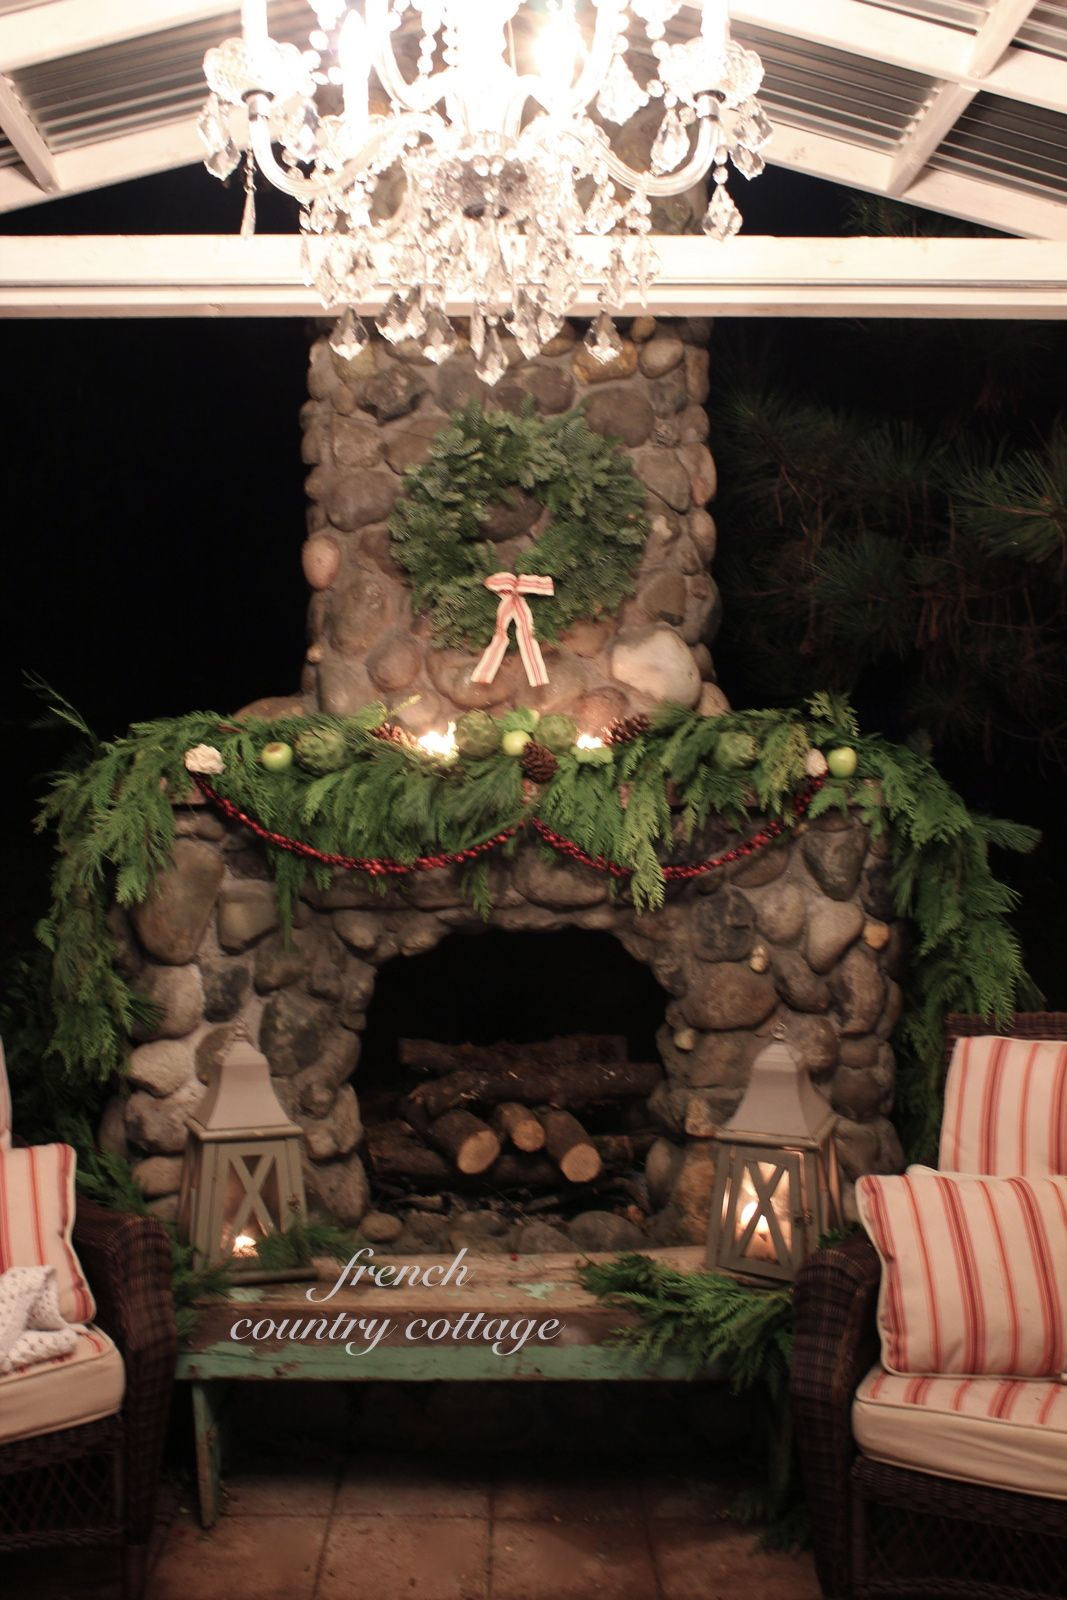 Great Outdoor Rock Fireplace Dressed For Christmas   I Love Decking The Halls For  Christmas And My Favorite Things To Use For Decorating Are Natural Elements.